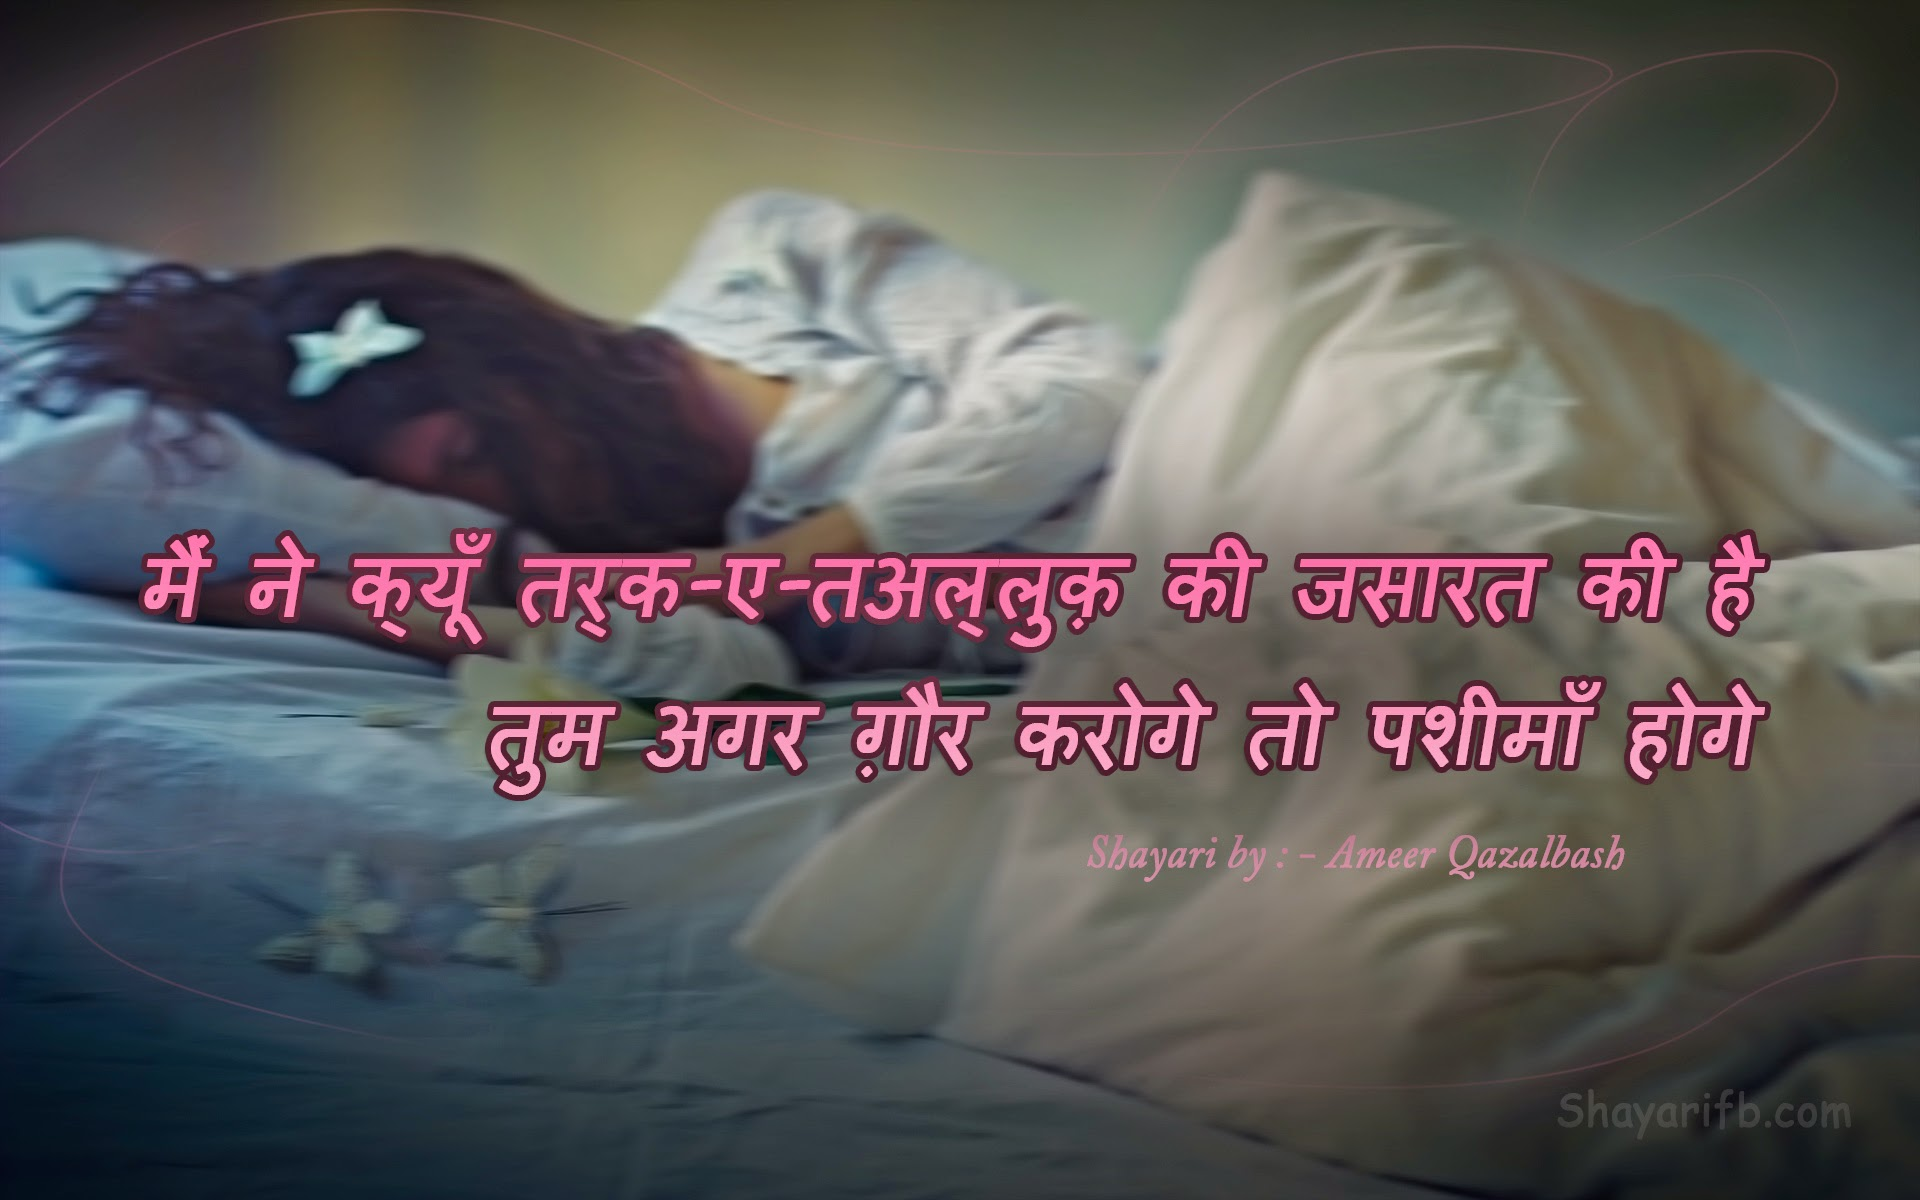 Love shayari wallpaper shayari in HindiLove Shayari and Sad Shayari